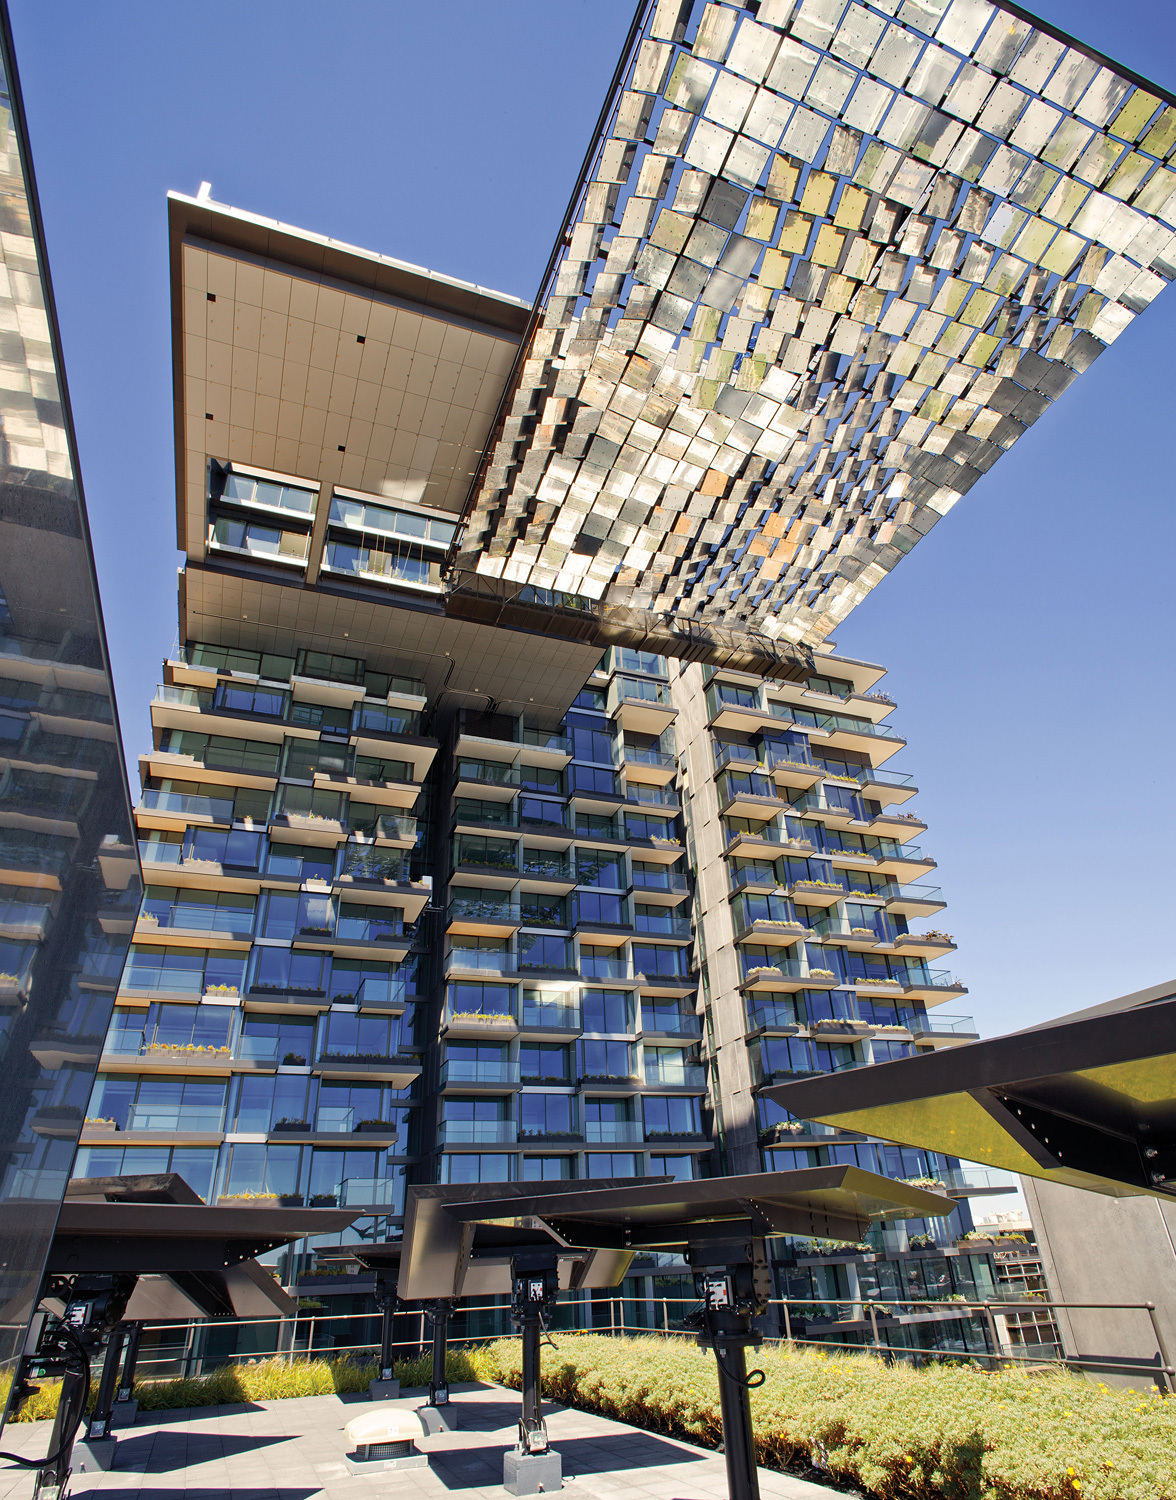 Shortlisted for Residential Building of the Year - Multiple Occupancy: Ateliers Jean Nouvel and PTW Architects for One Central Park in Sydney, Australia. Photo courtesy of LEAF Awards.